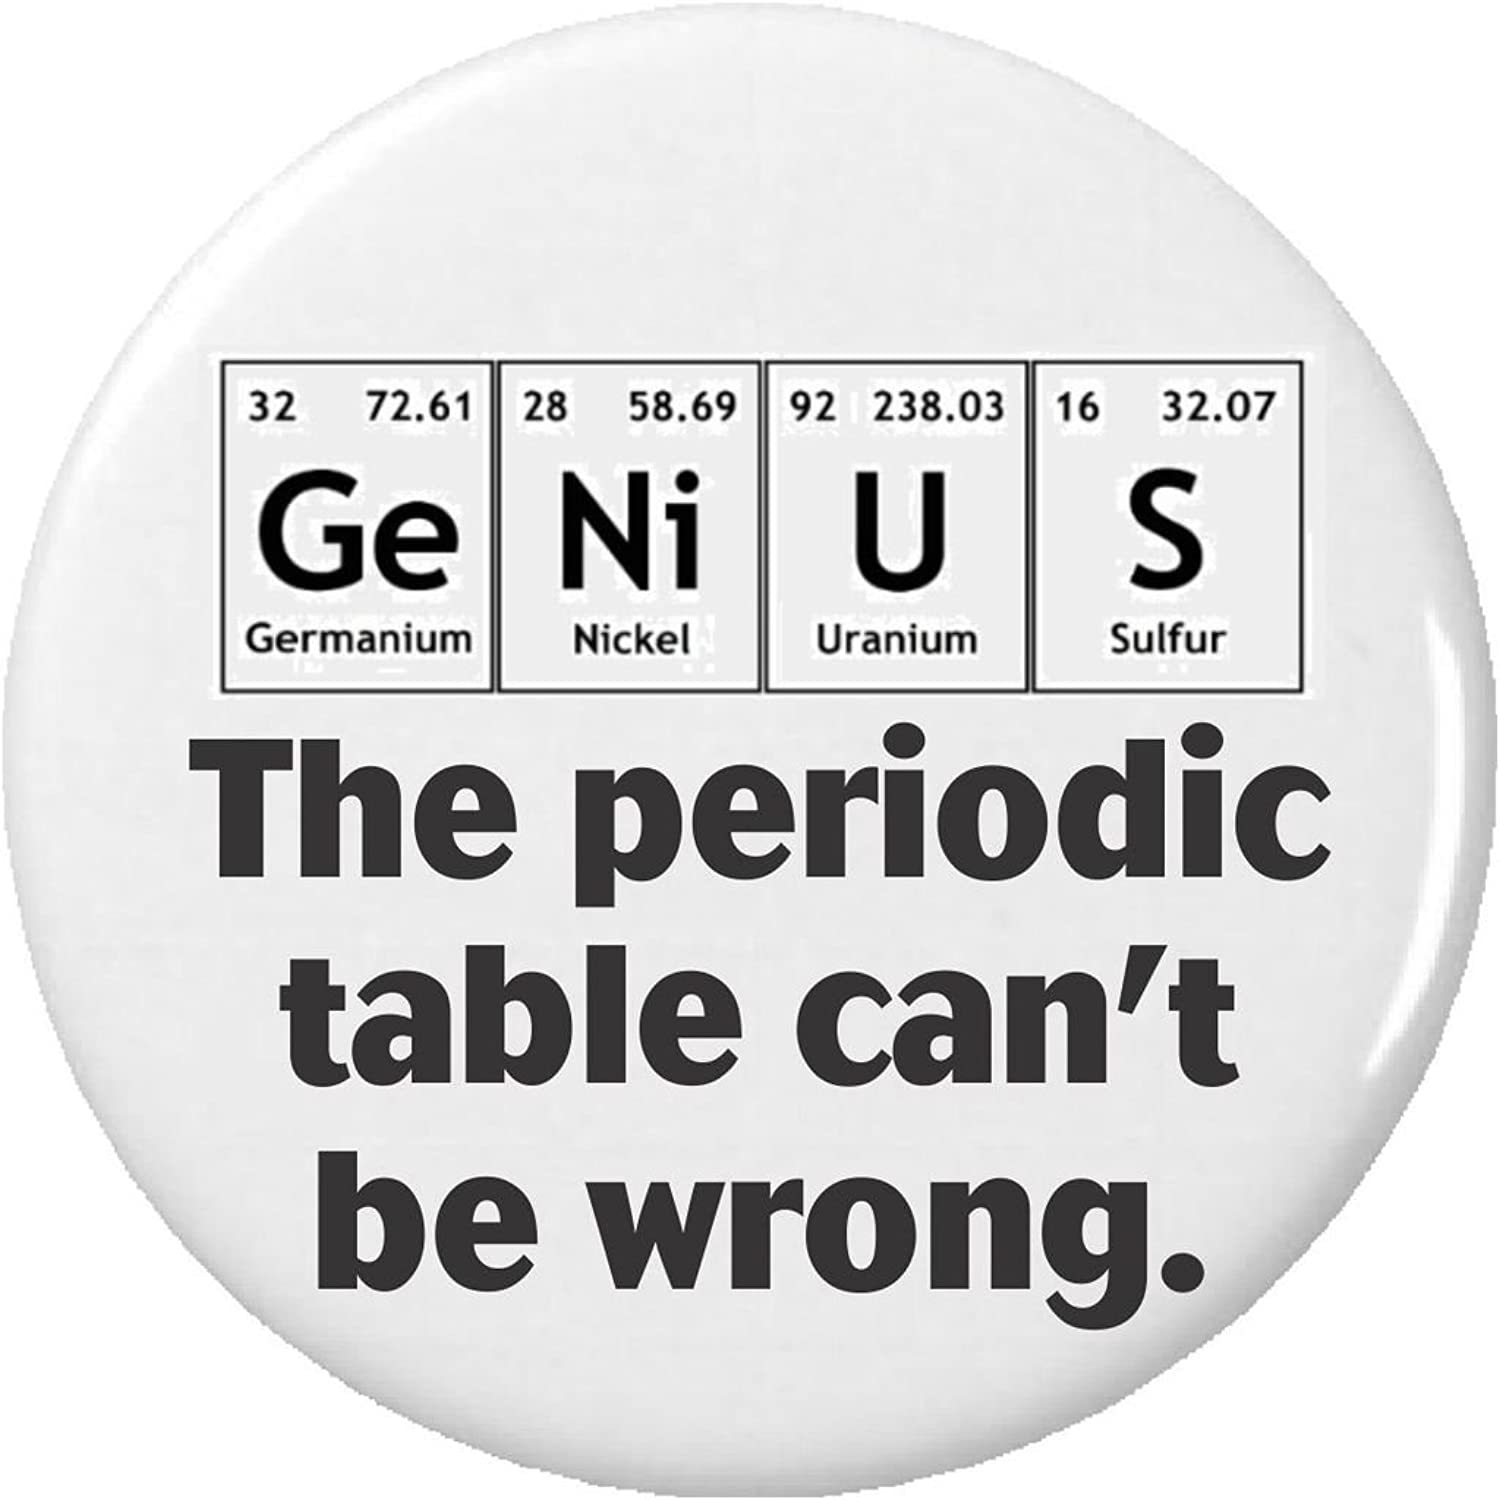 Amazon genius the periodic table cant be wrong 225 amazon genius the periodic table cant be wrong 225 keychain science chemistry funny clothing gamestrikefo Image collections